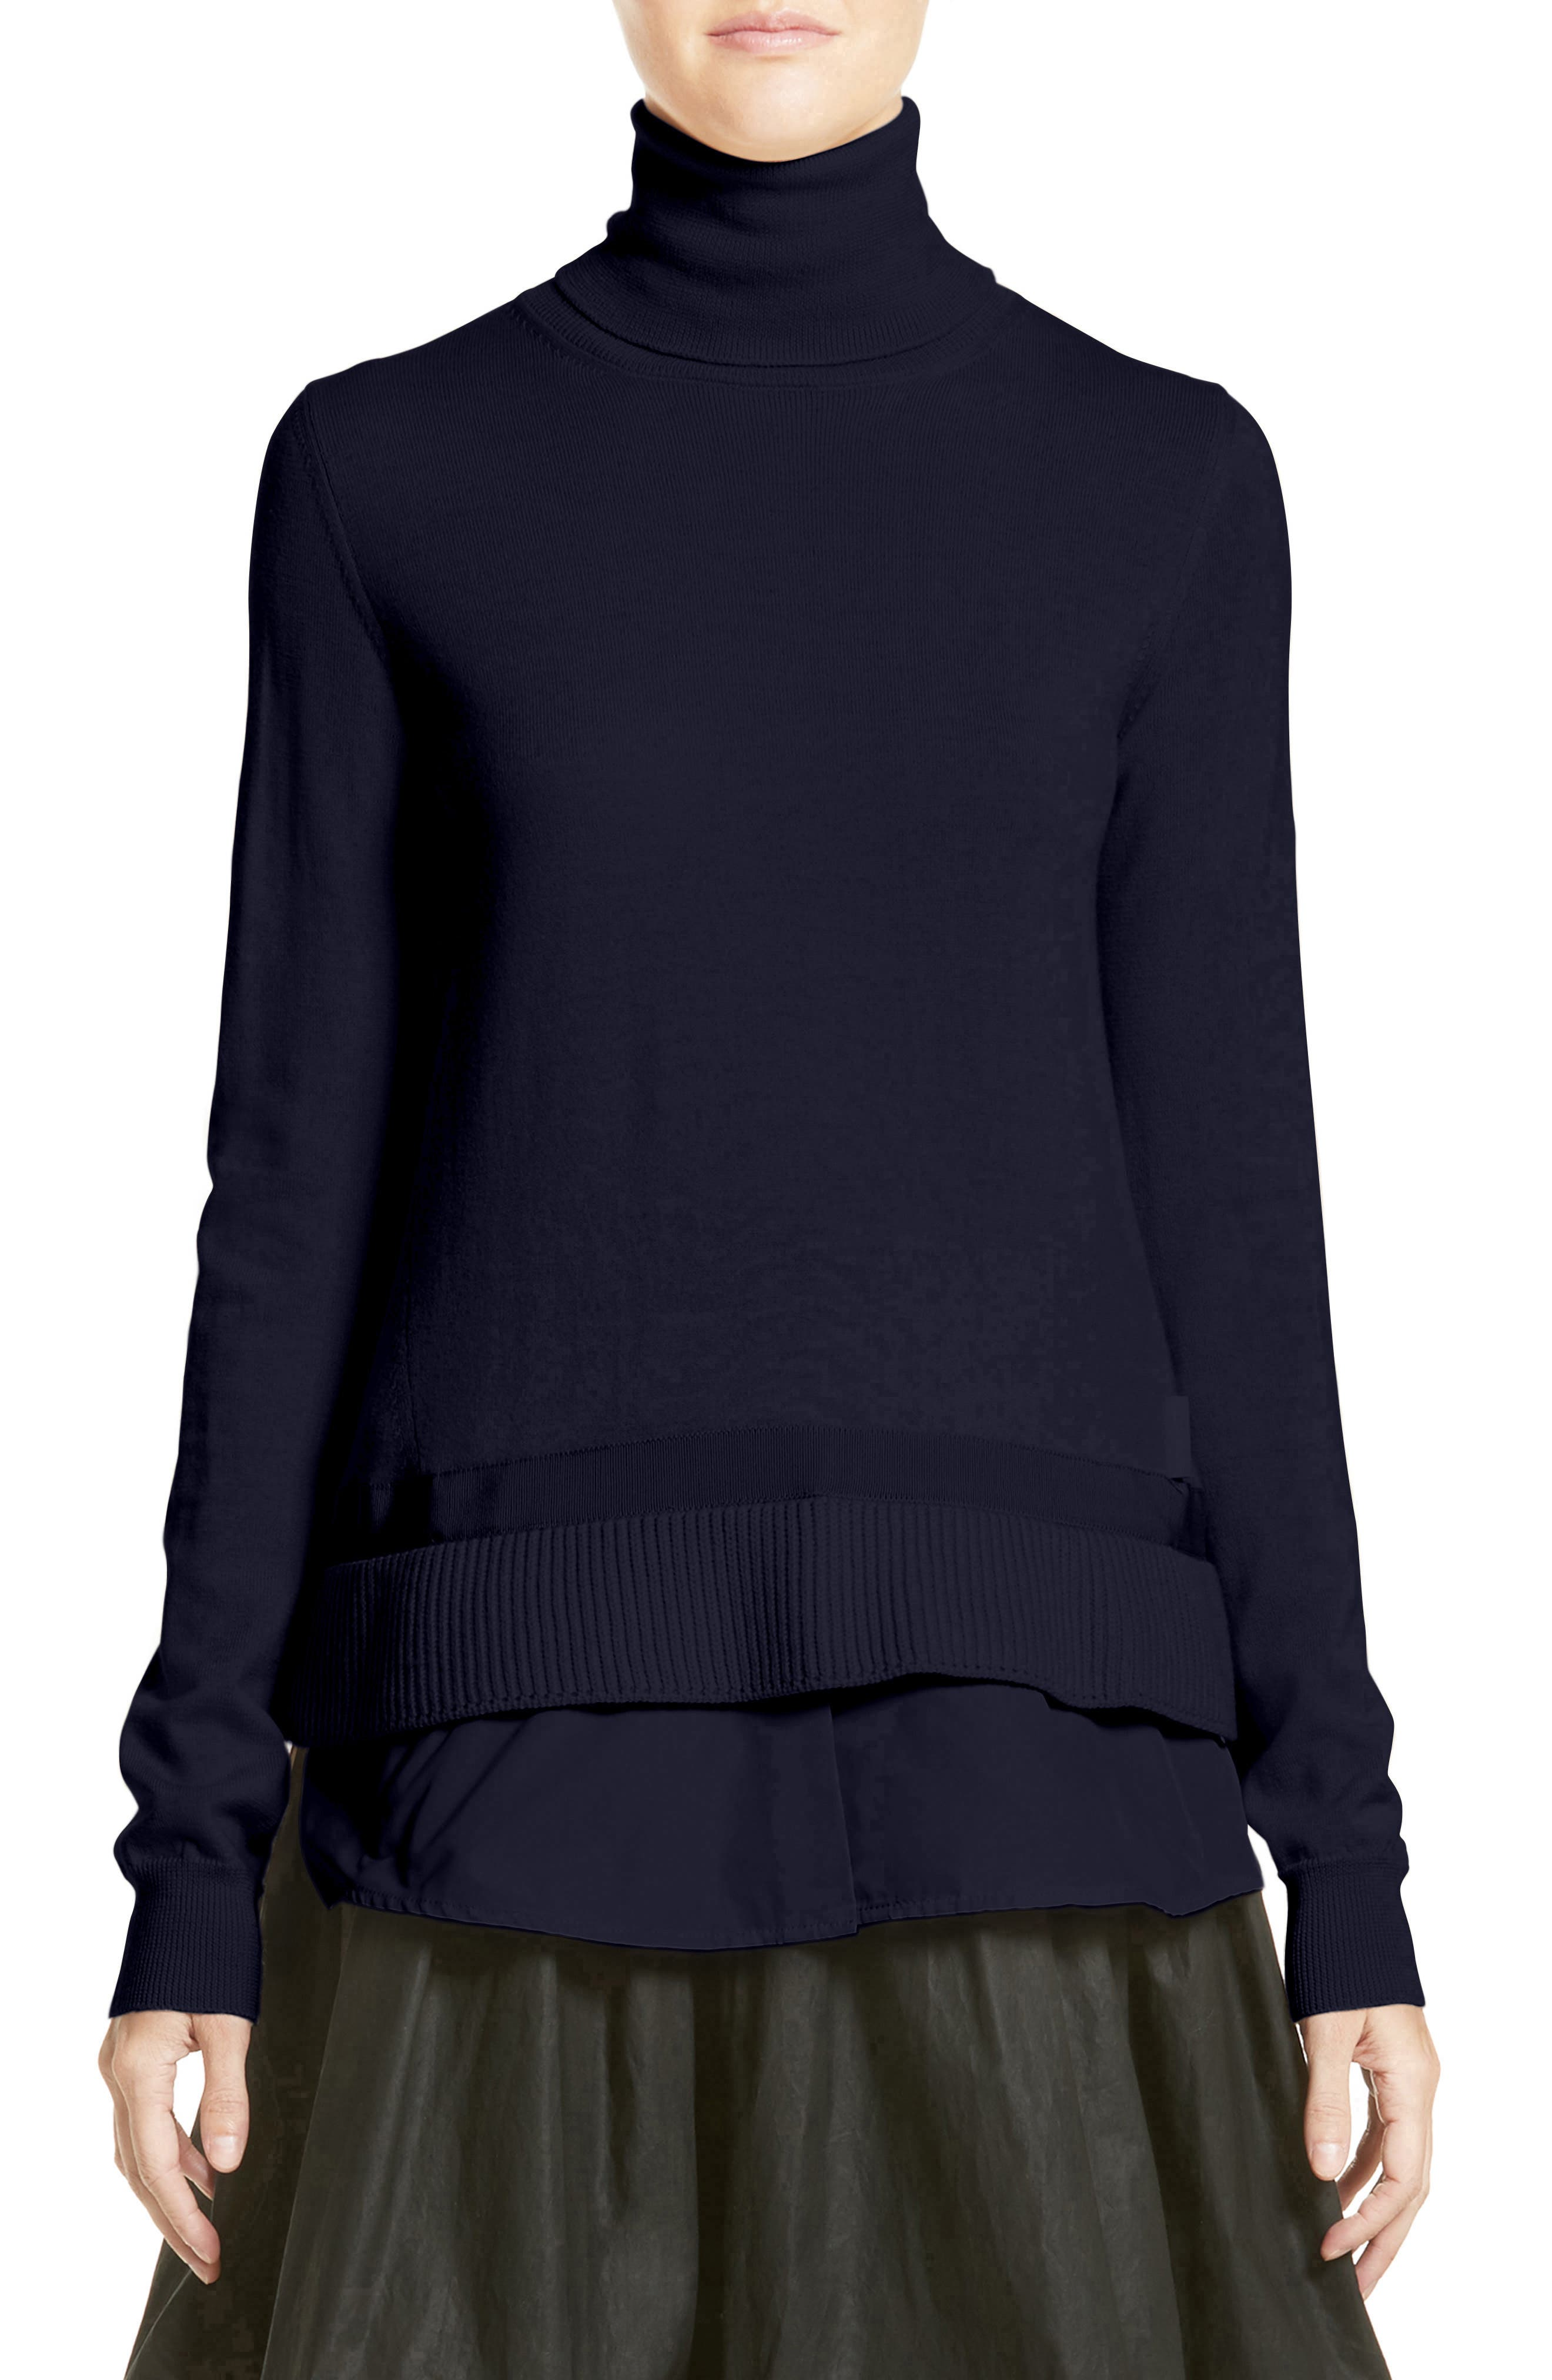 Main Image - Moncler Ciclista Tricot Knit Wool Turtleneck Sweater